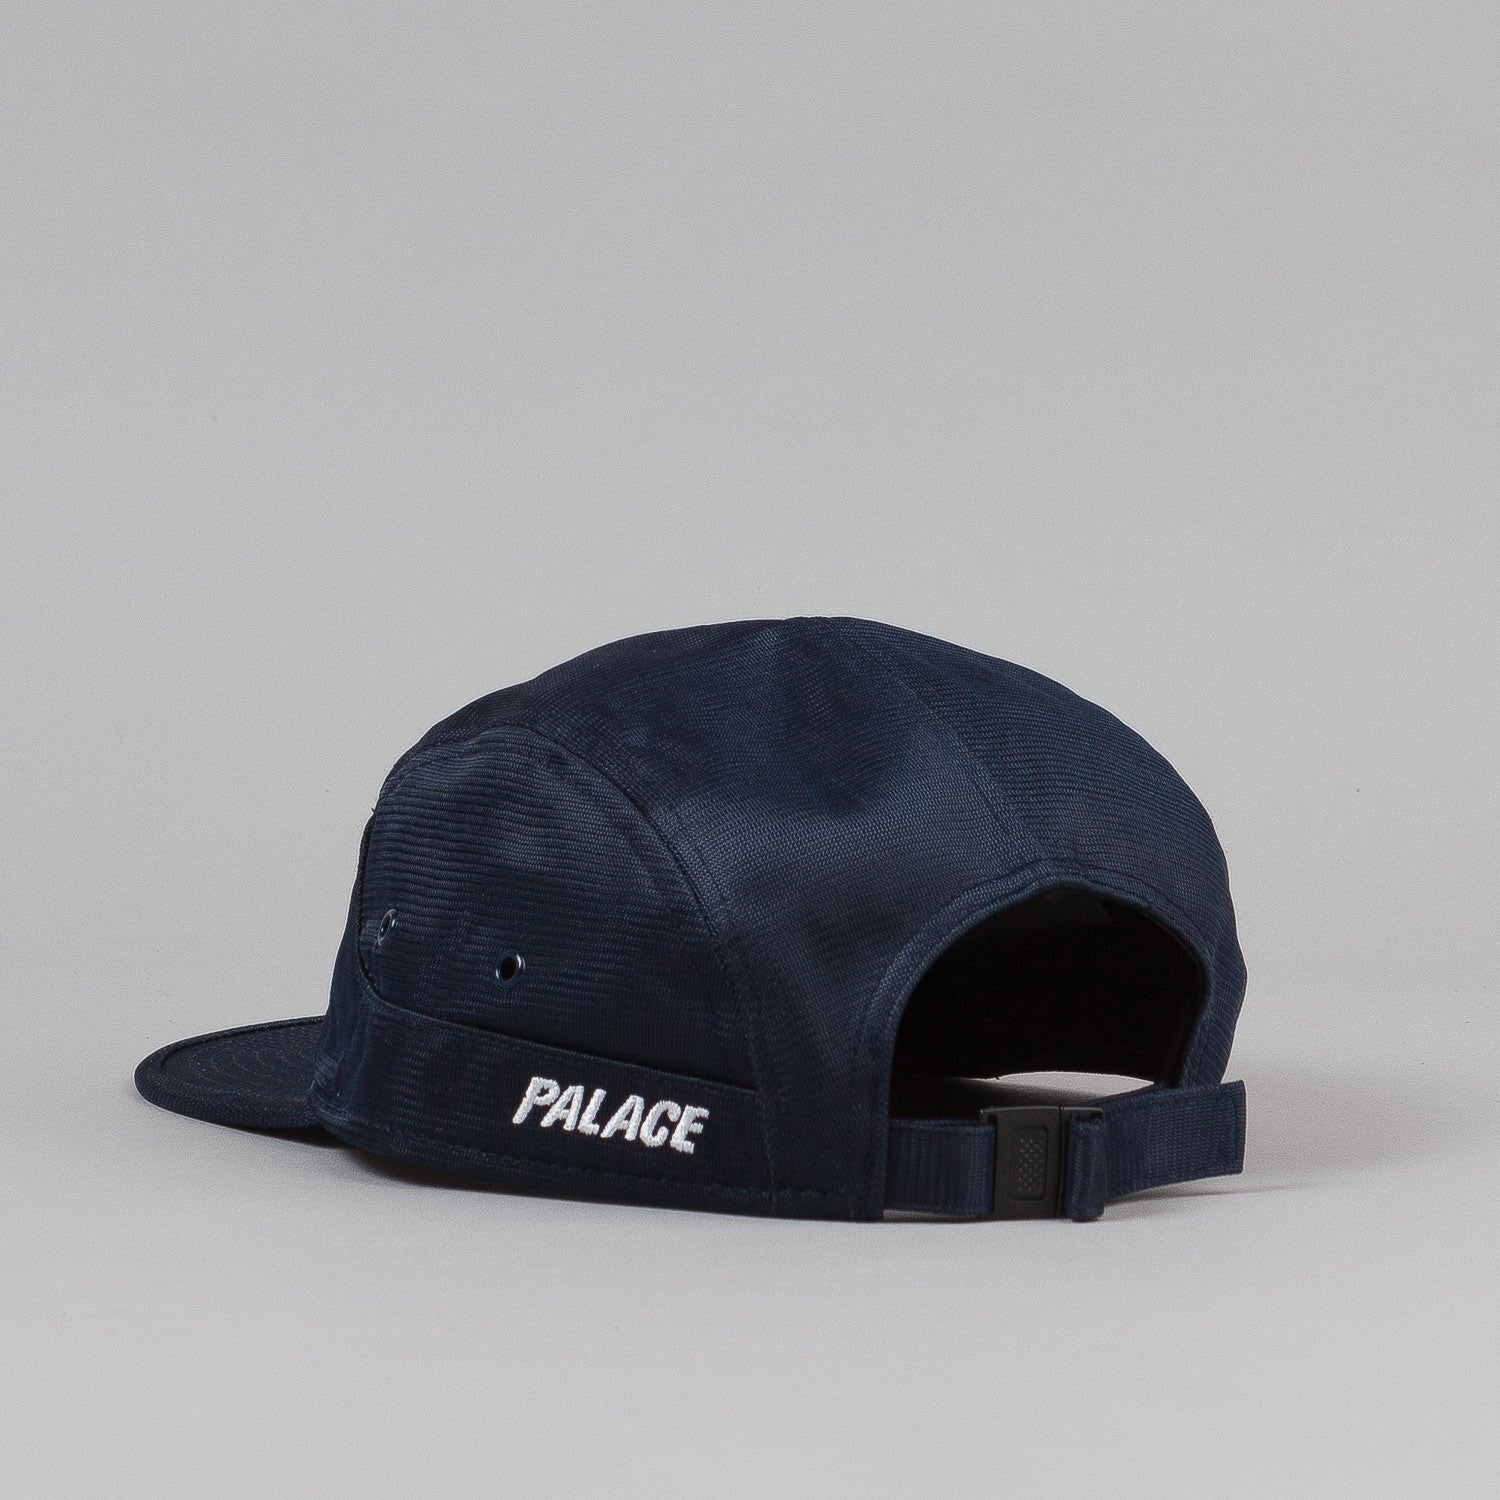 Palace 7 Panel Cap - Navy